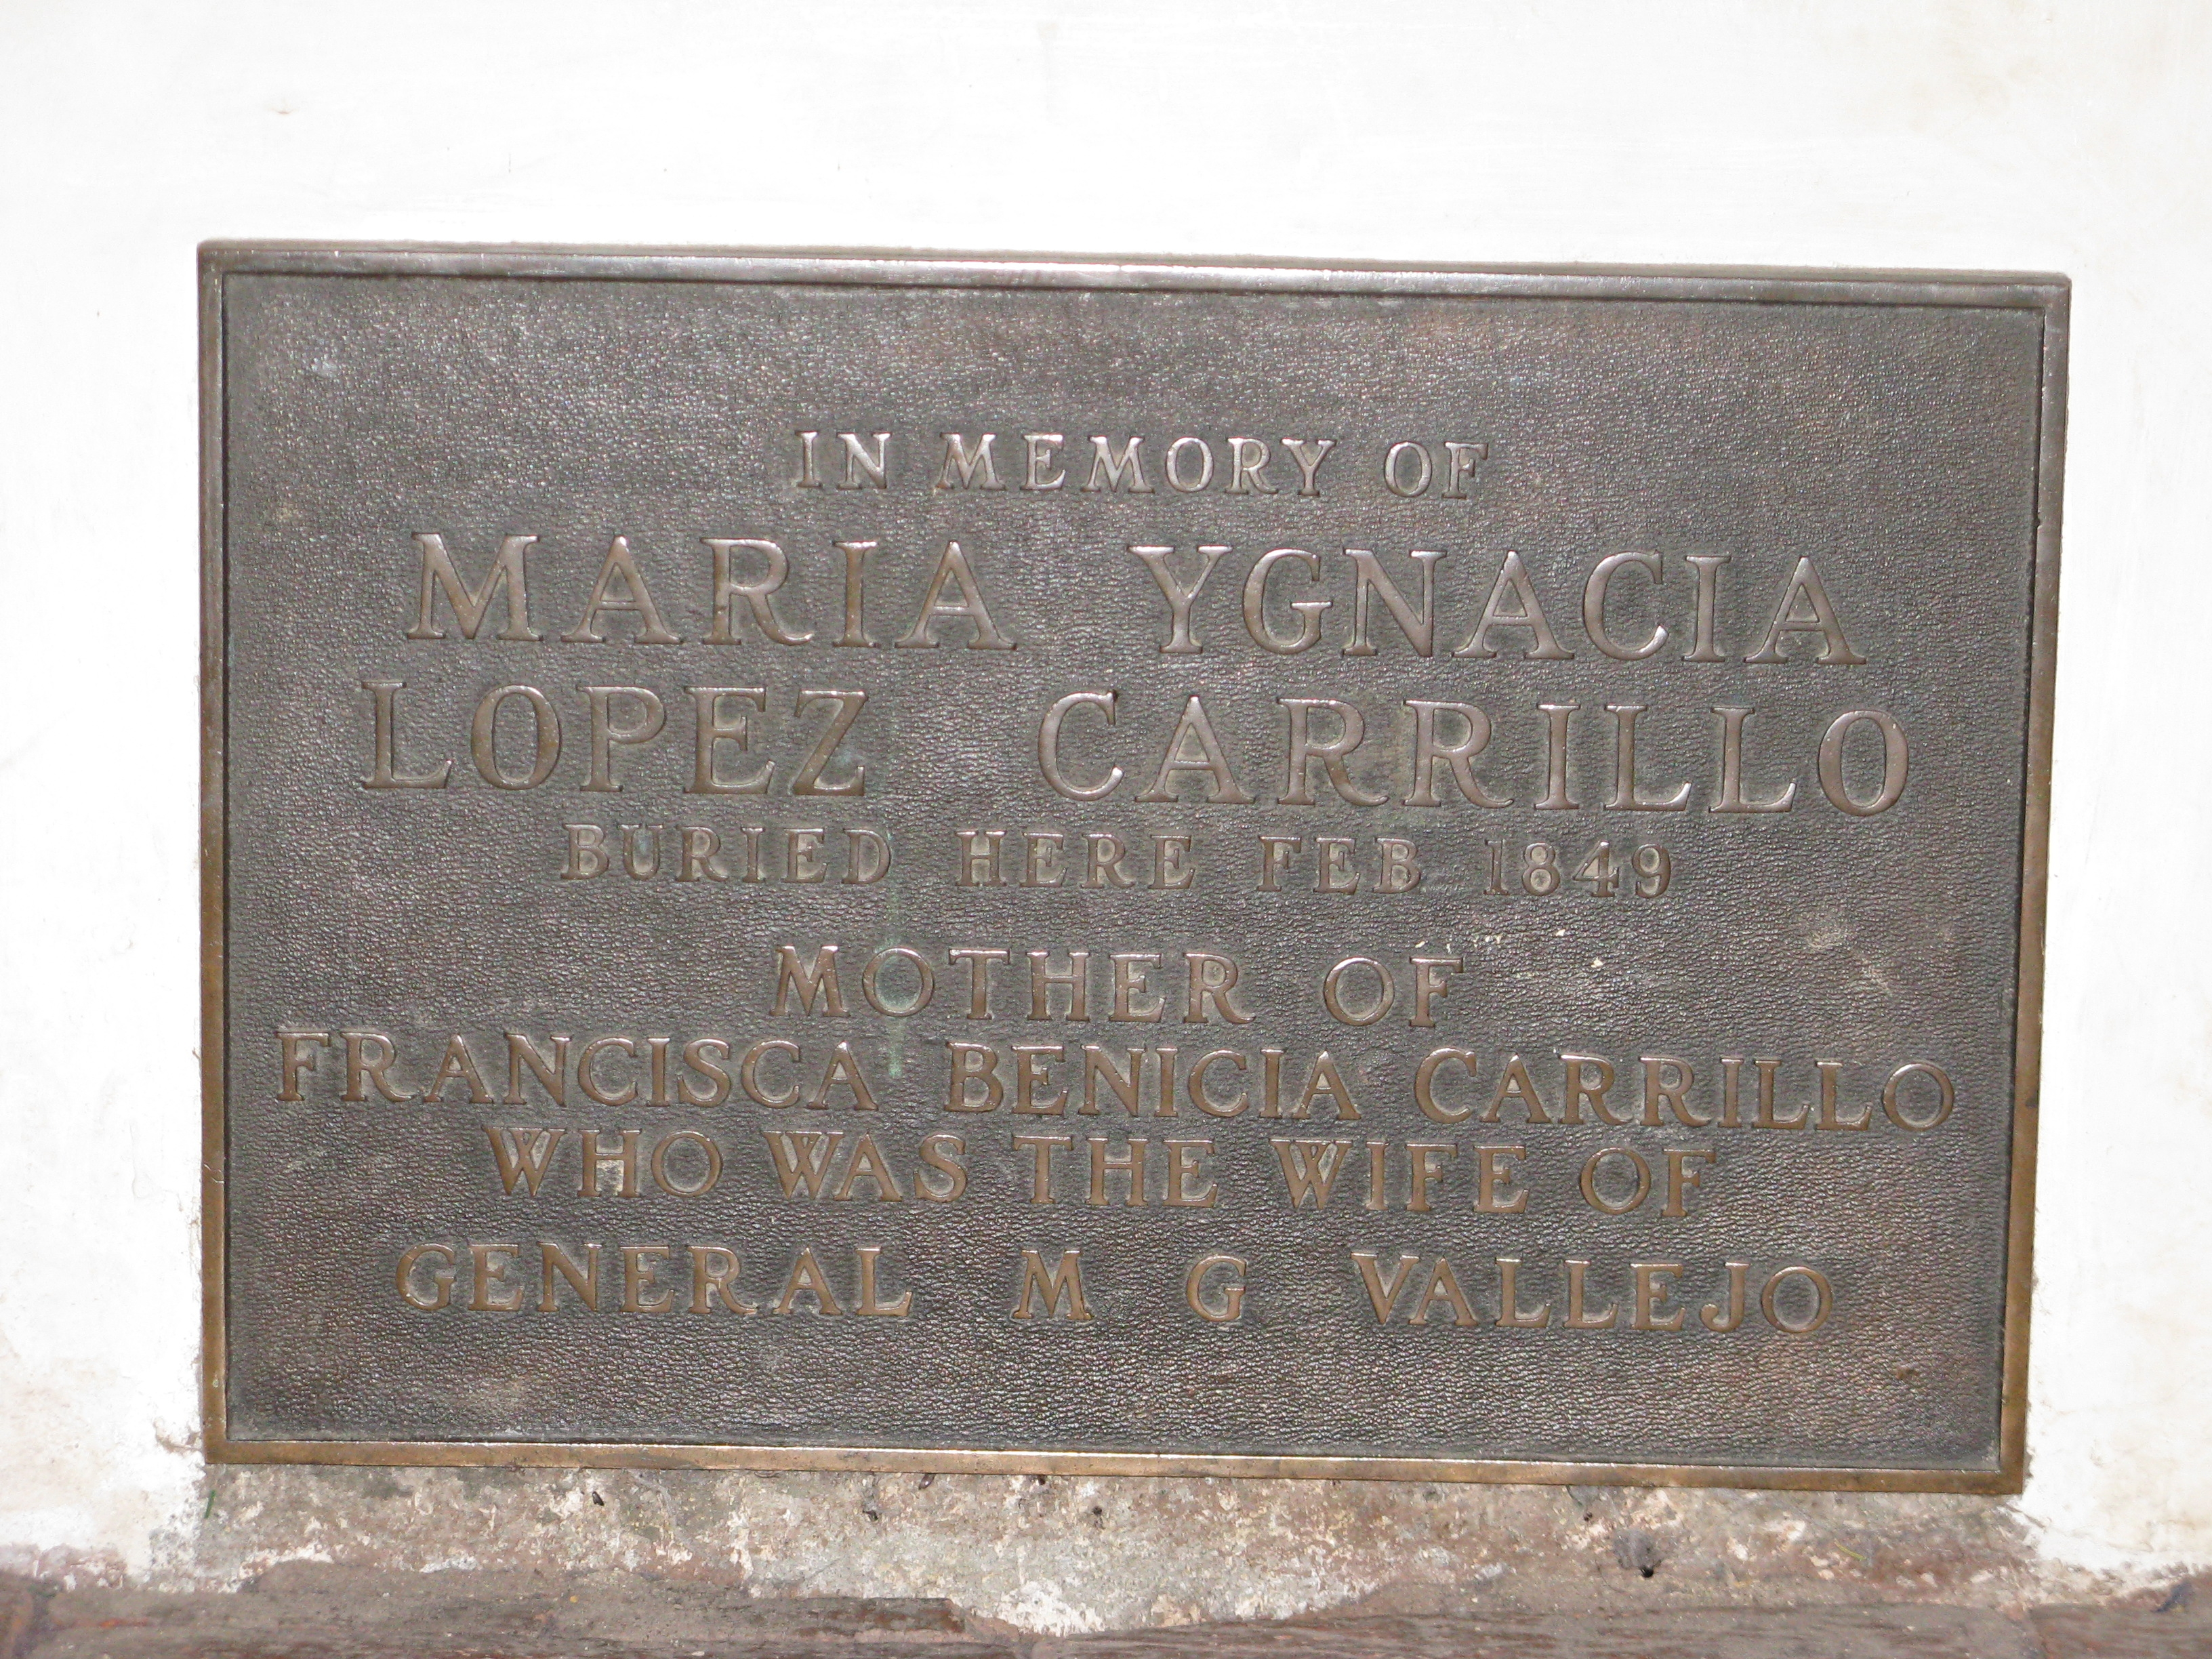 Marker at Tomb of Maria Ygnacia Lopez Carrilo